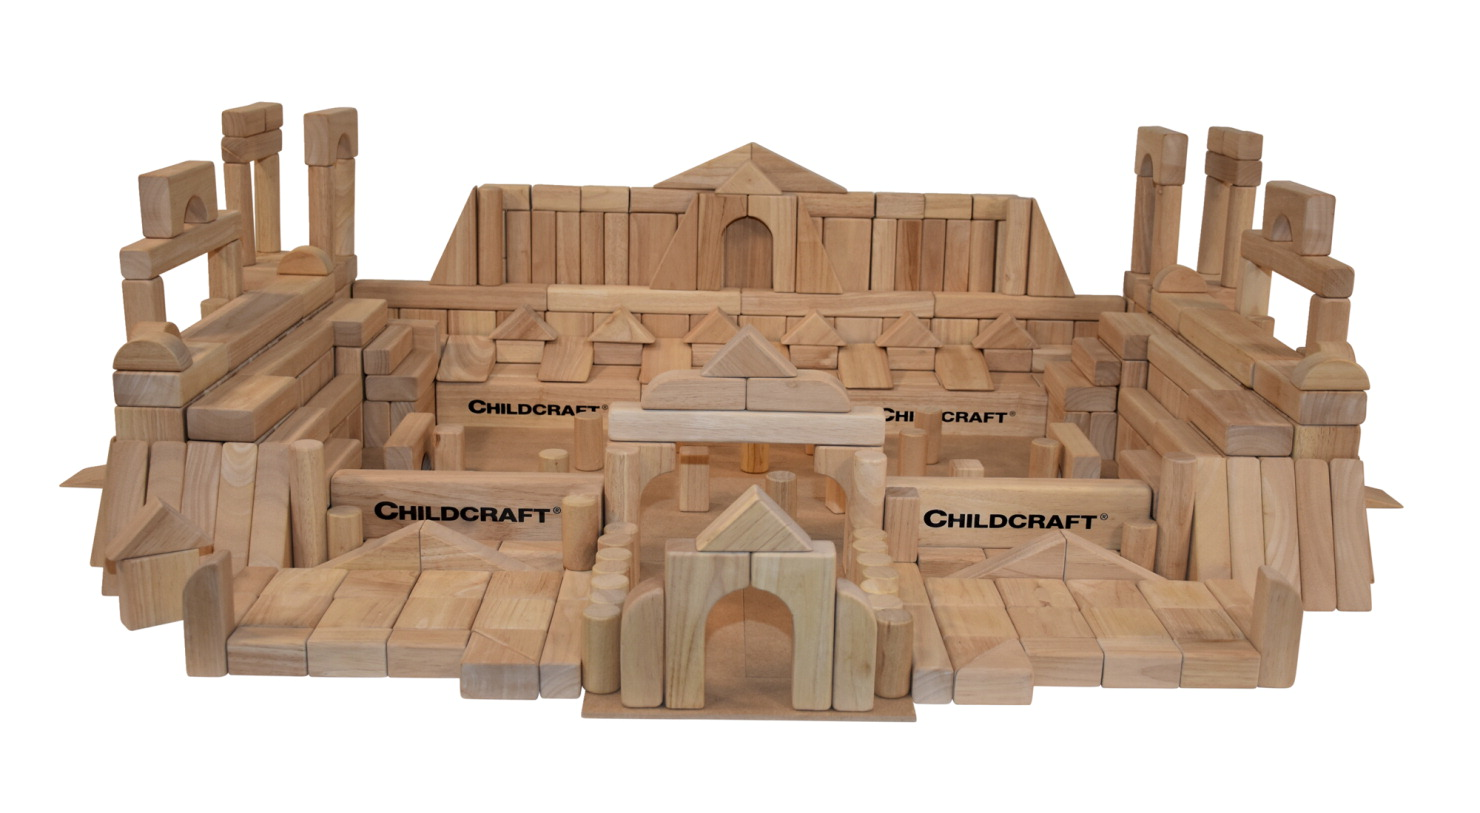 Childcraft Standard Unit Block Set, 480 Pieces